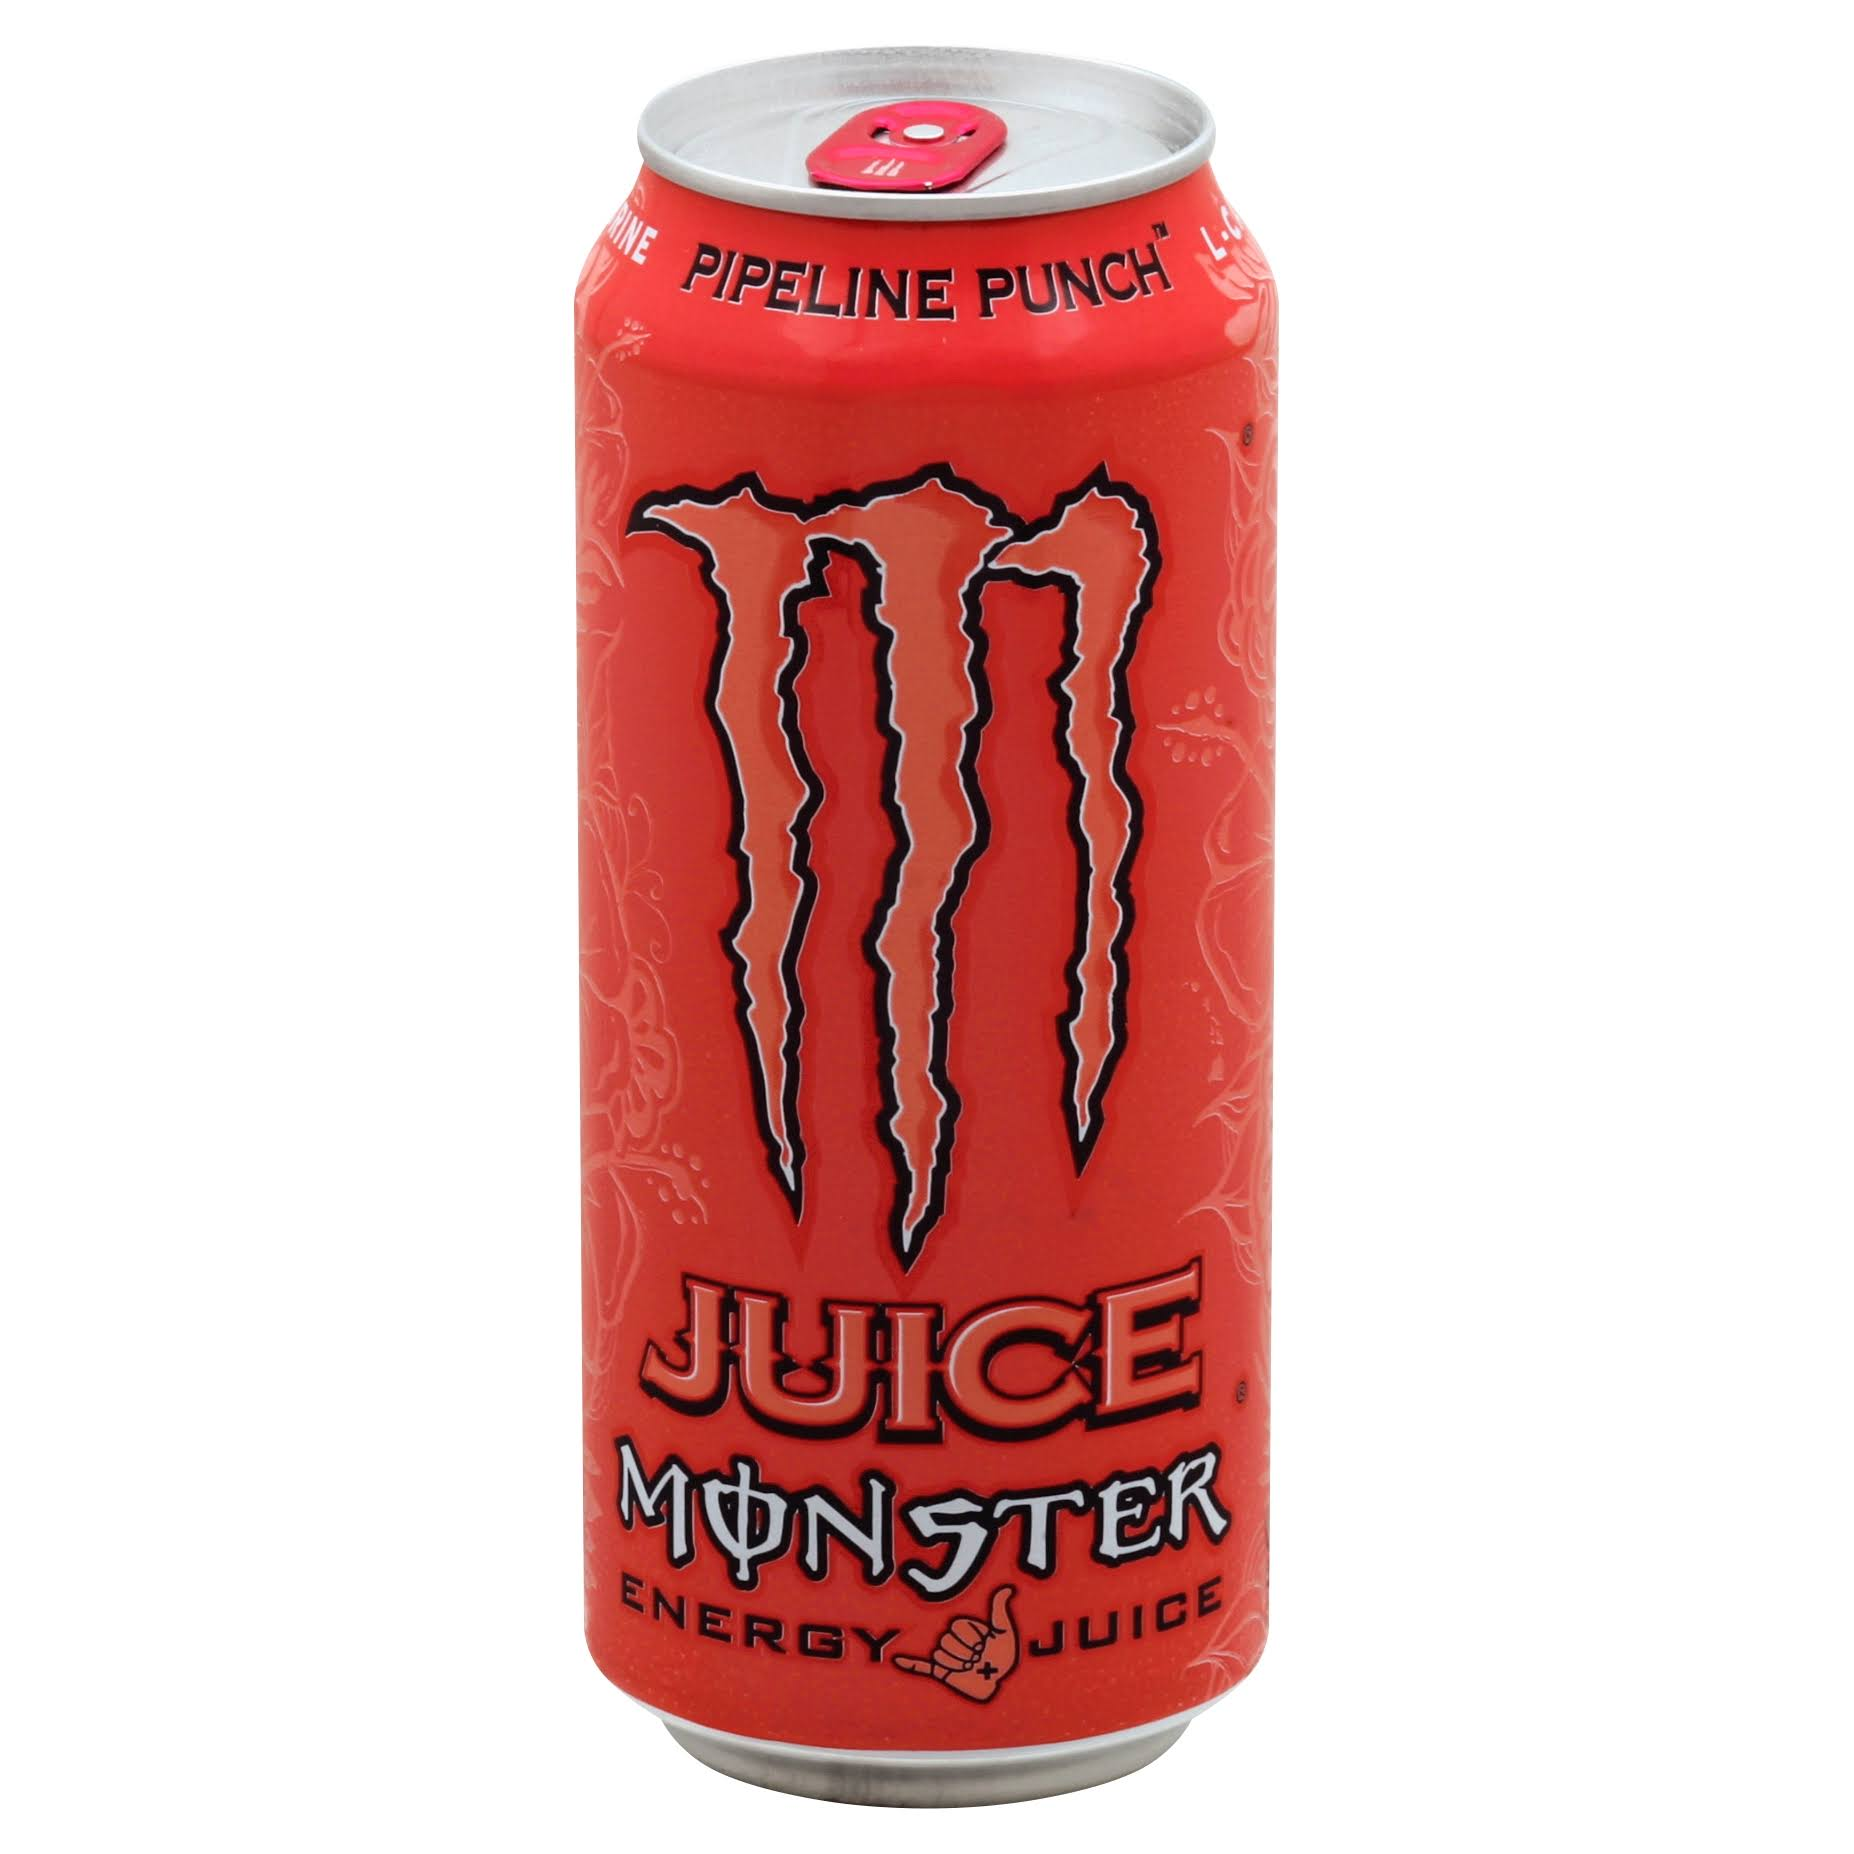 Monster Energy Juice - Pipeline Punch, 470ml